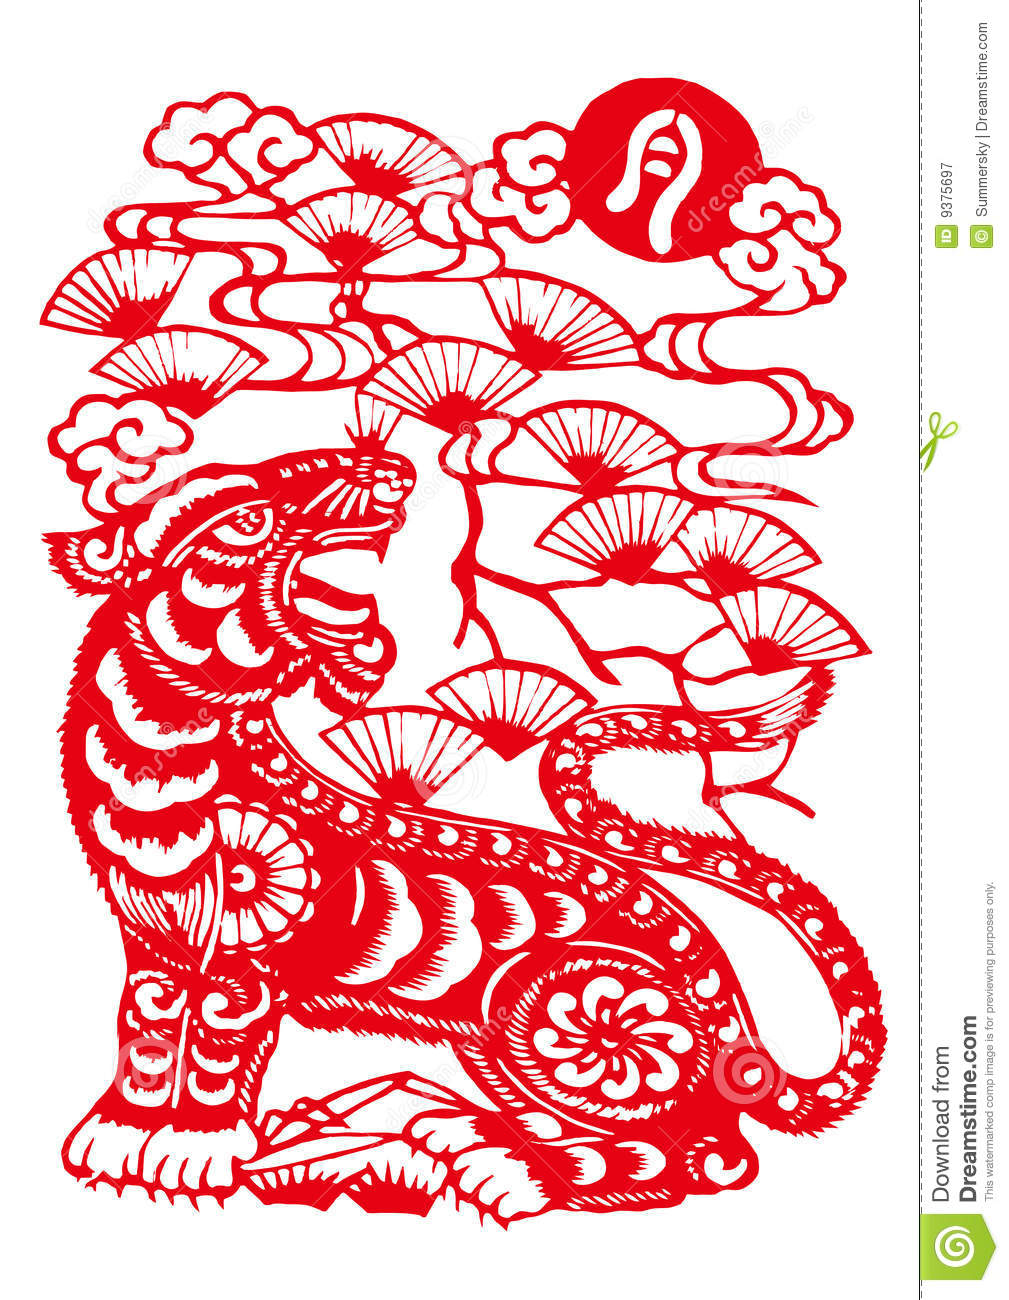 chinese zodiac of tiger year royalty free stock